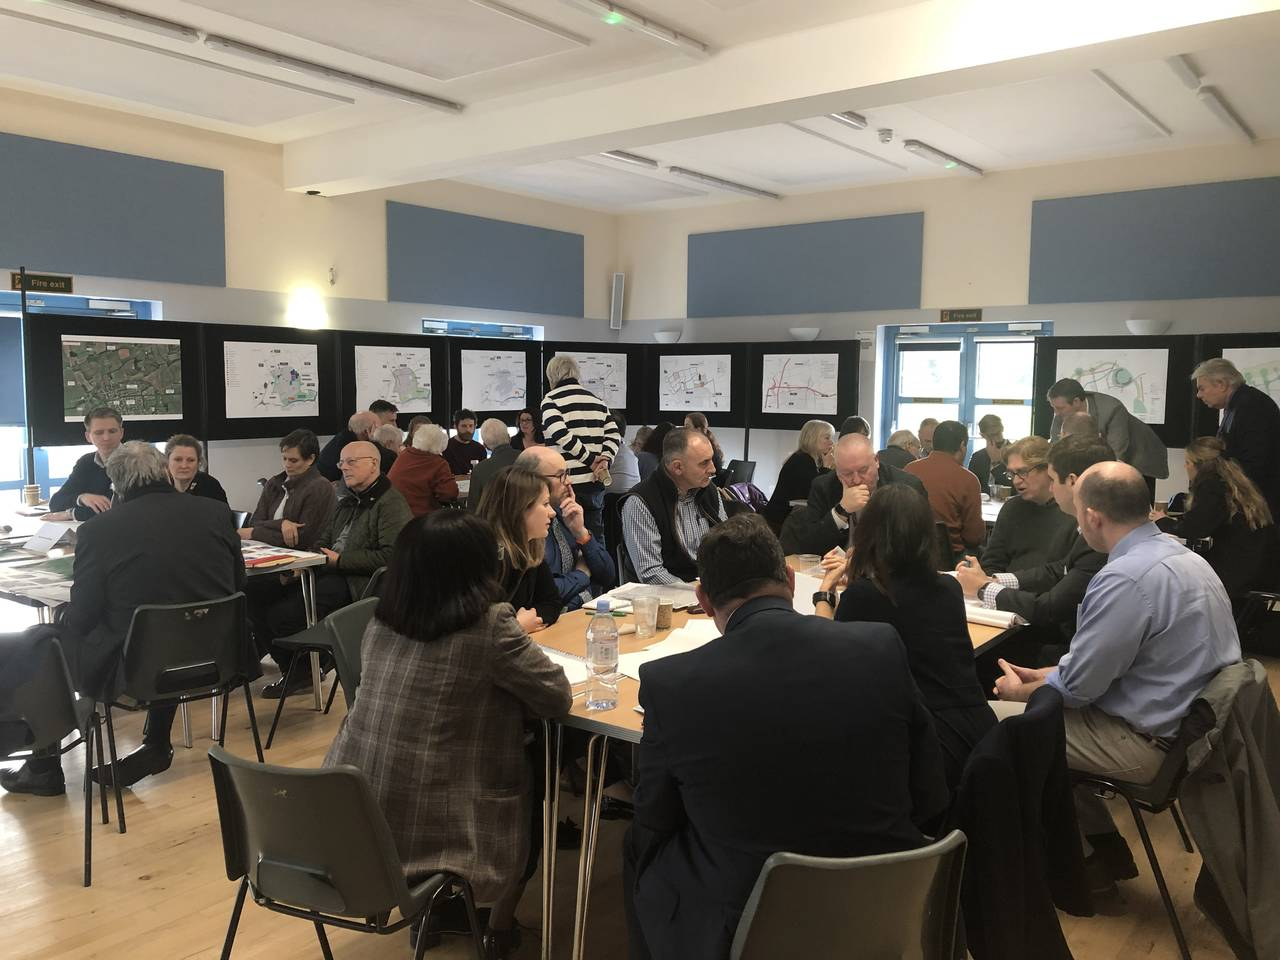 Stage 1 stakeholder workshop event – January 29 2020